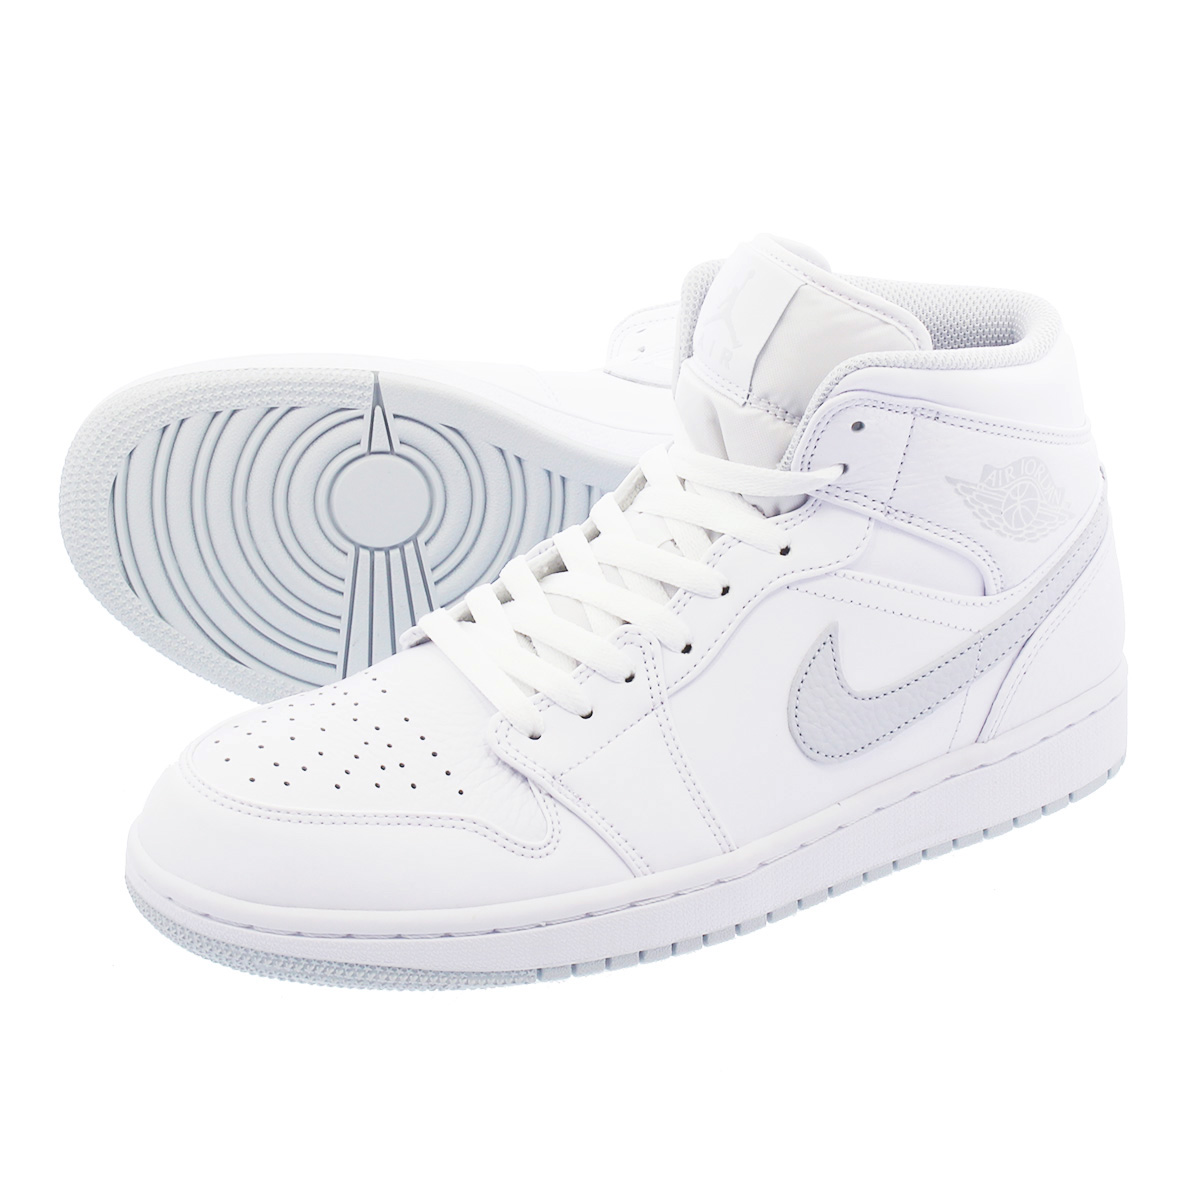 NIKE AIR JORDAN 1 MID ナイキ エア ジョーダン 1 ミッド WHITE/PURE PLATINUM/WHITE 554724-108